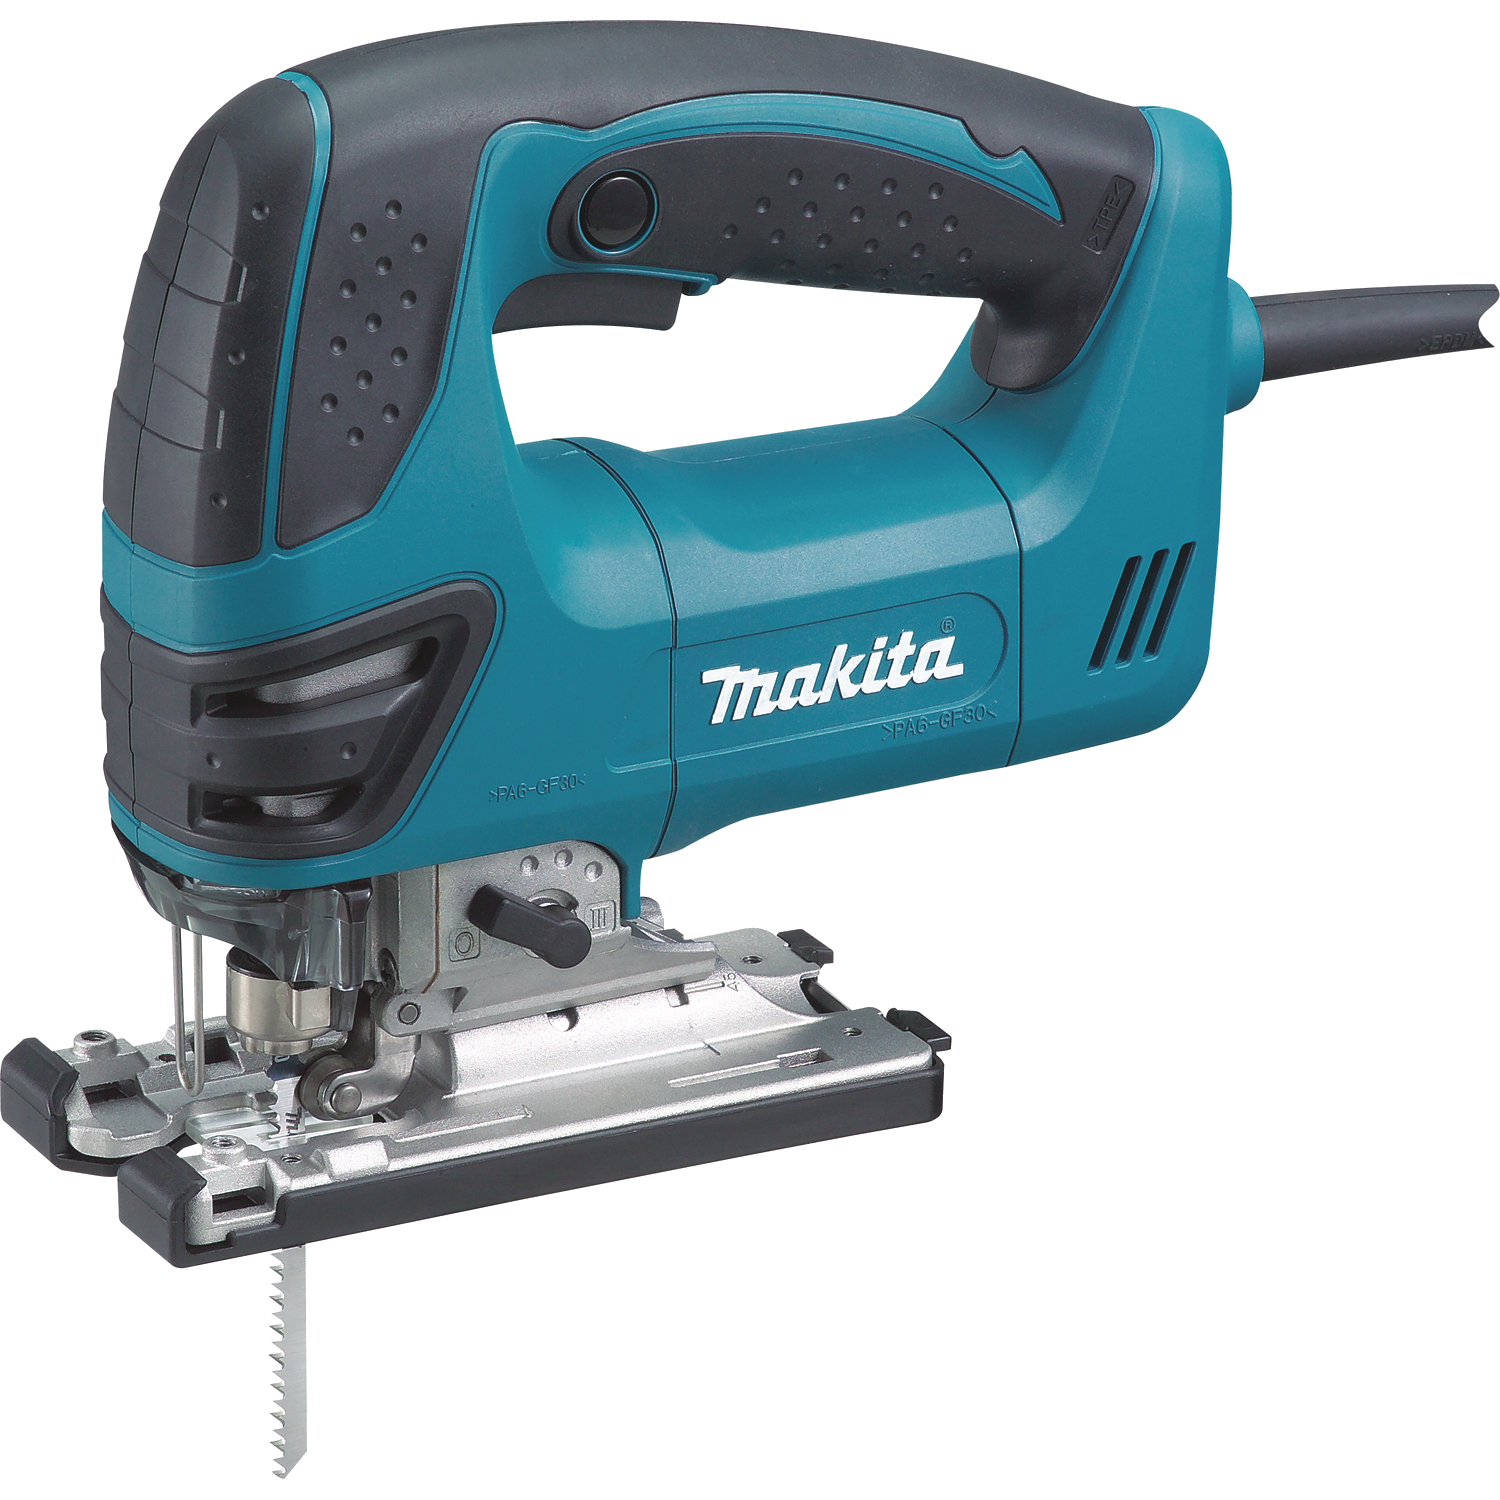 Makita usa product details 4350fct 4350fct greentooth Images